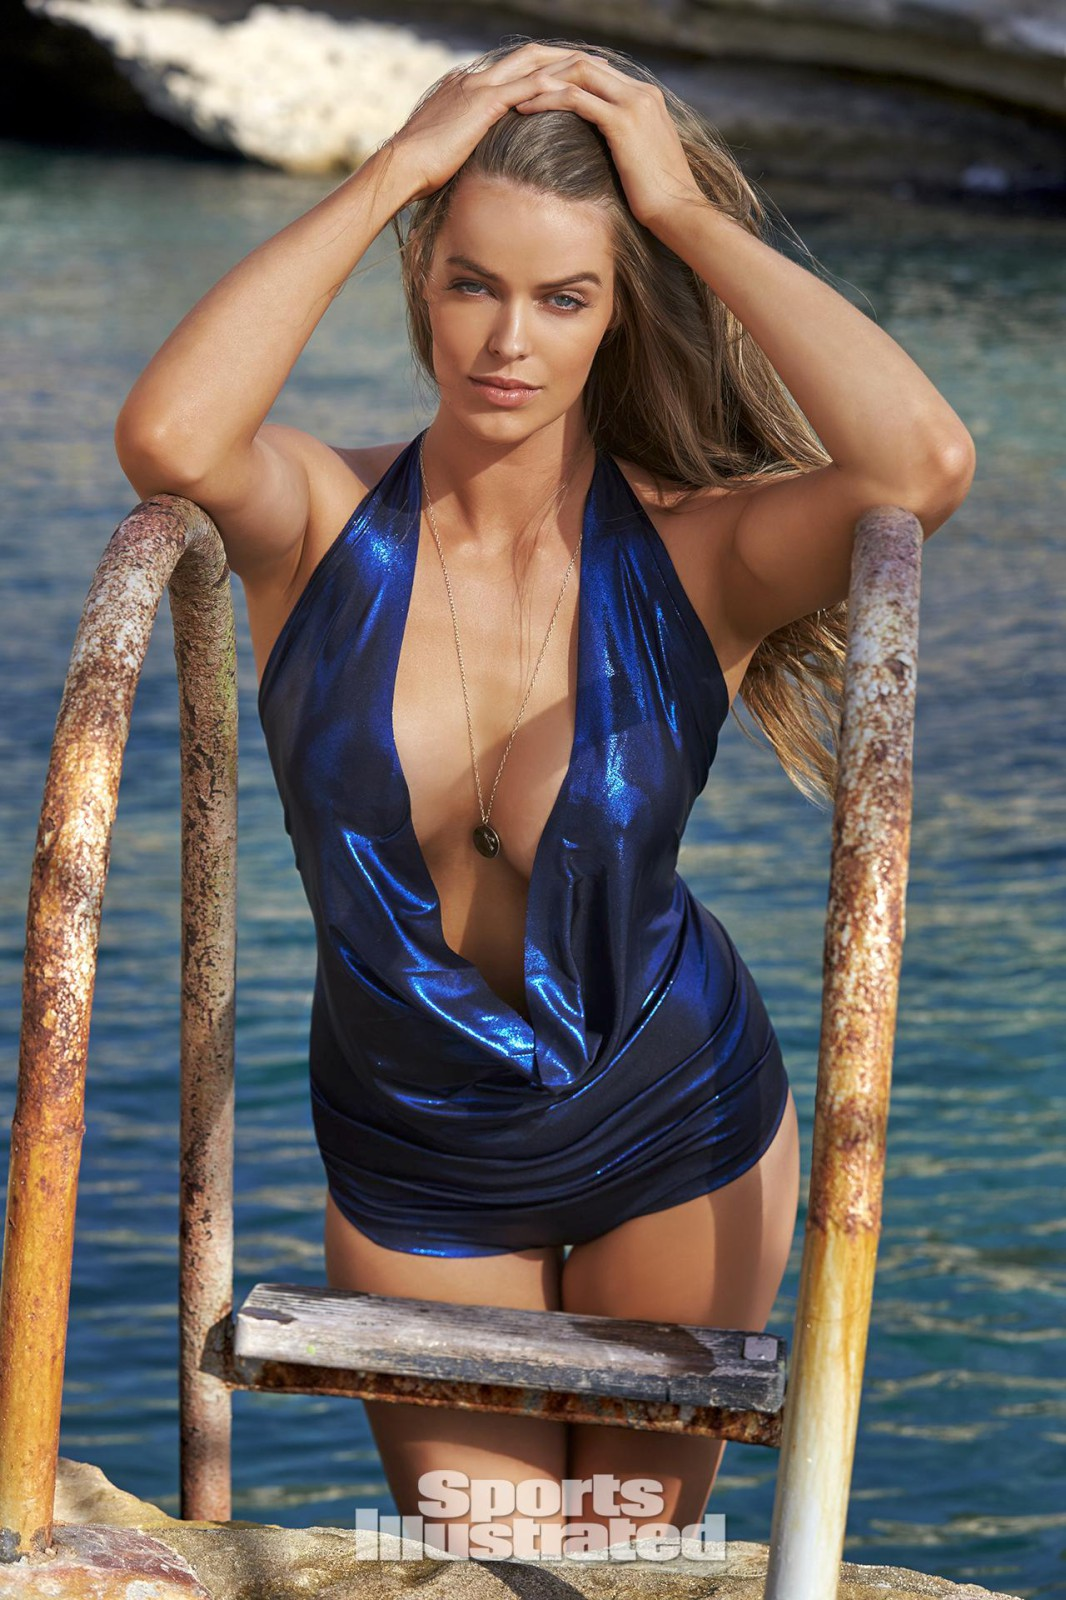 ... 1066 × 1600 Robyn Lawley – Sports Illustrated Swimsuit Issue 2016